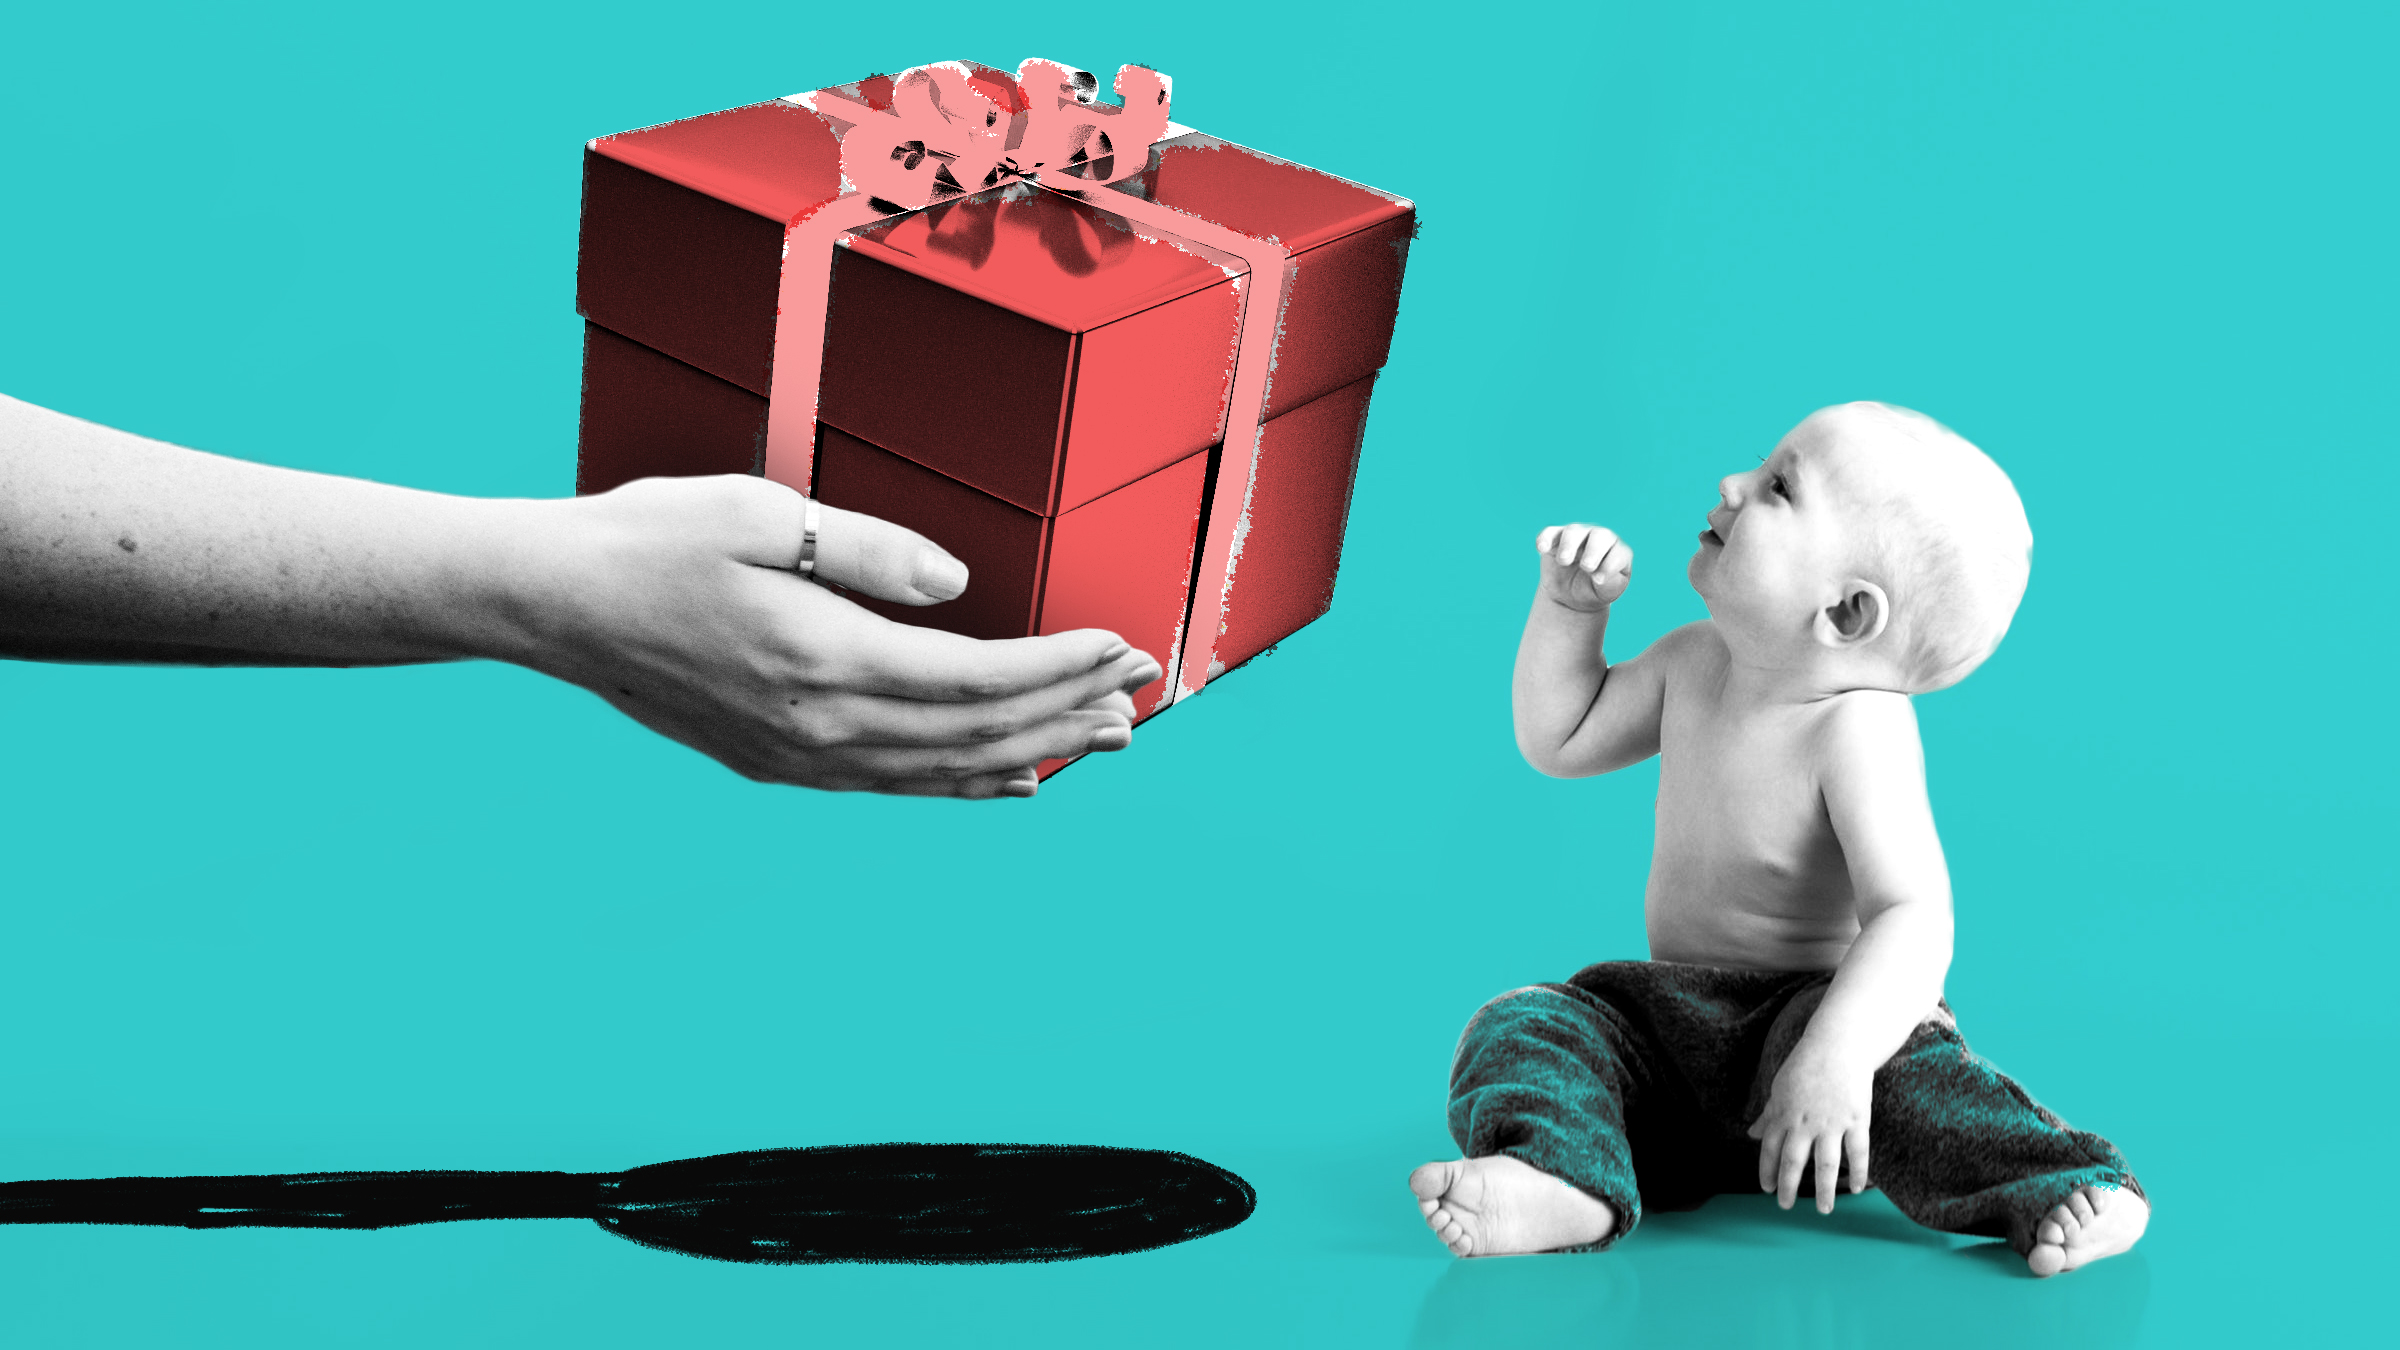 Outstretched hands gifting a big present to a baby to depict the difficulty of choosing the right baby shower gift.